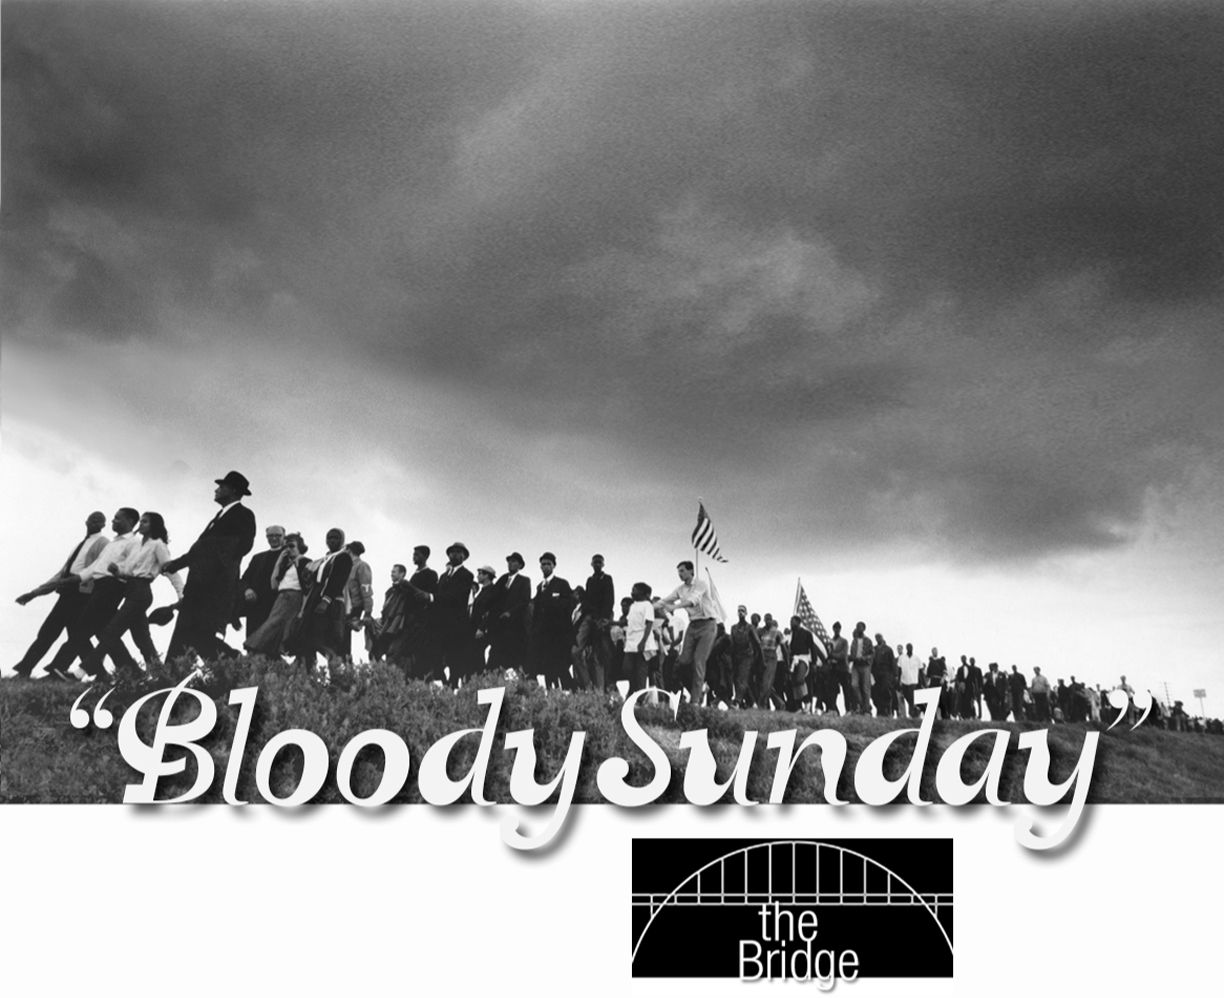 ((*BLOODYSUNDAY-MARCH-wHED-BRIDGELOGO